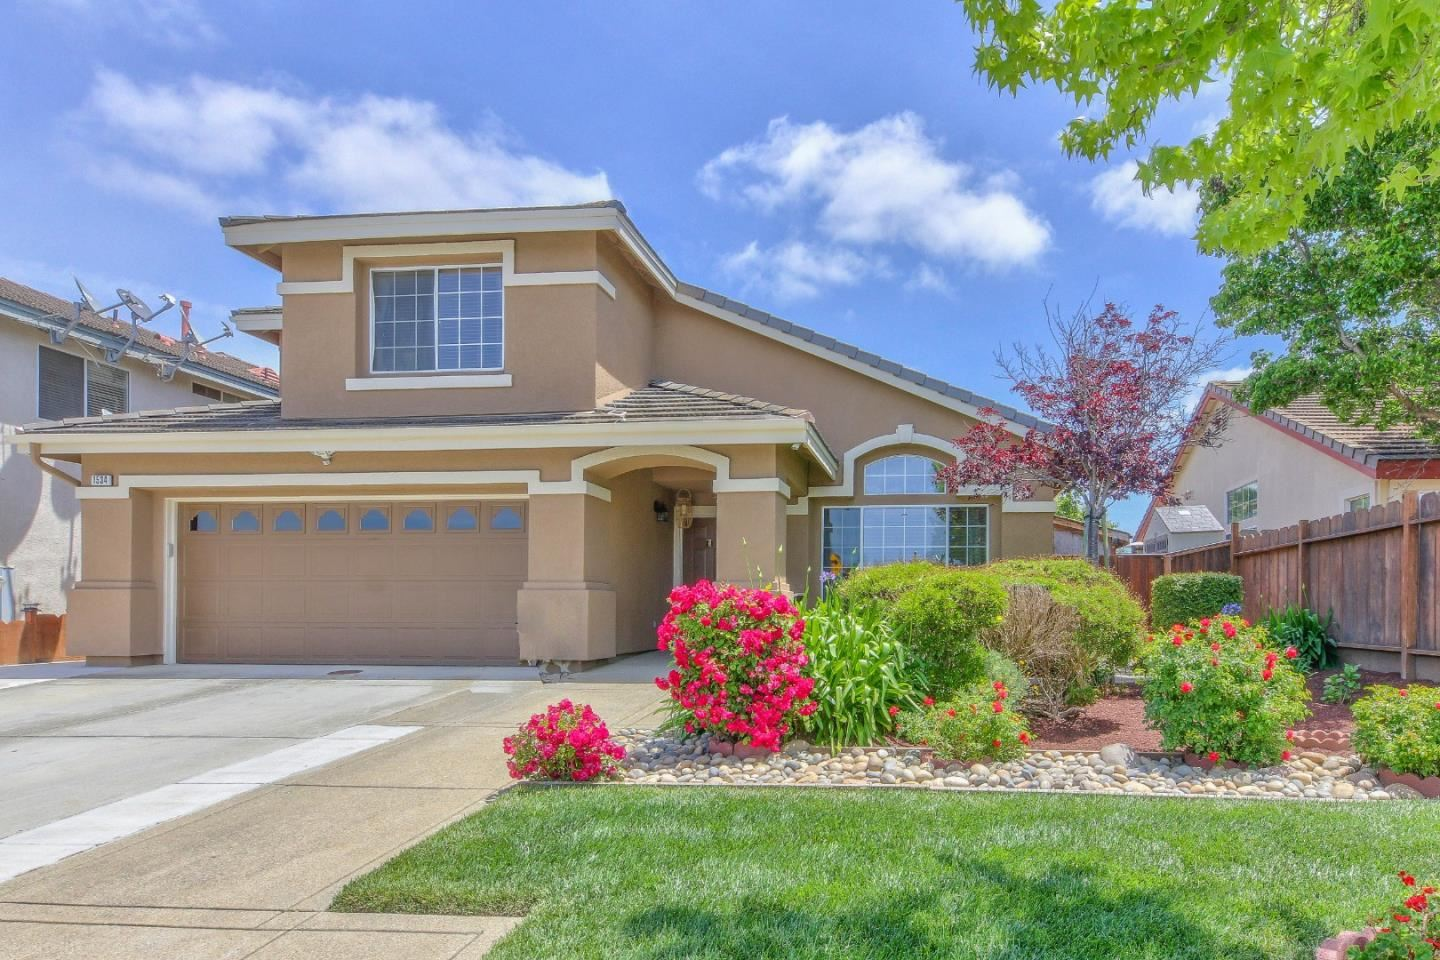 Photo for 1534 Madrone DR, SALINAS, CA 93905 (MLS # ML81792941)